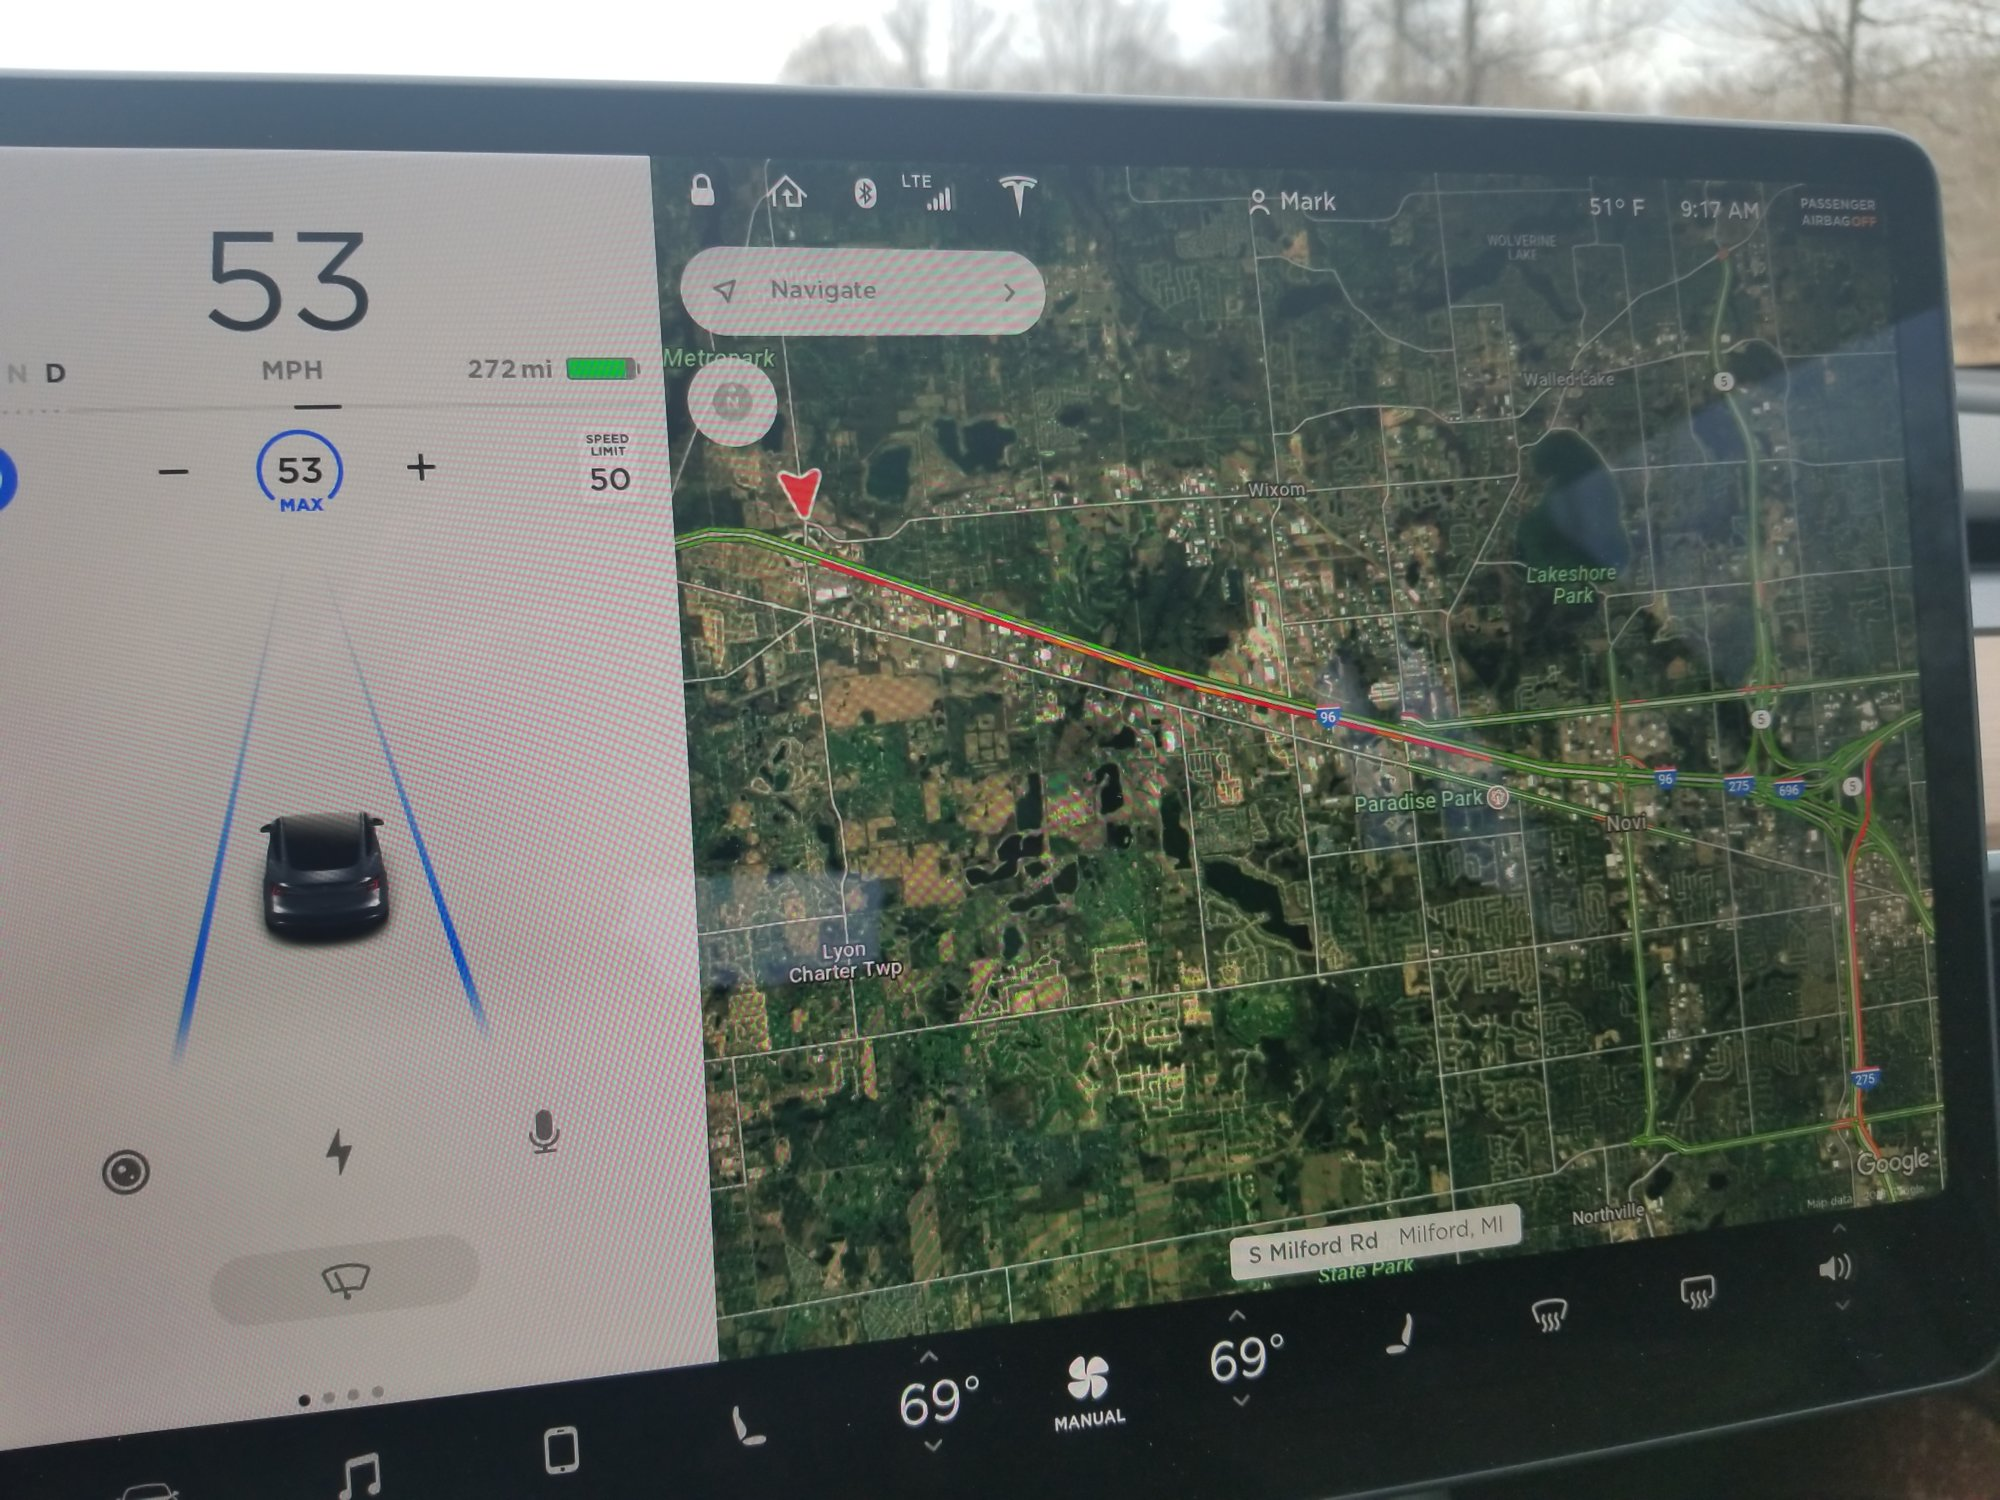 Traffic Flow Data Different In Satellite View Vs Map View Tesla